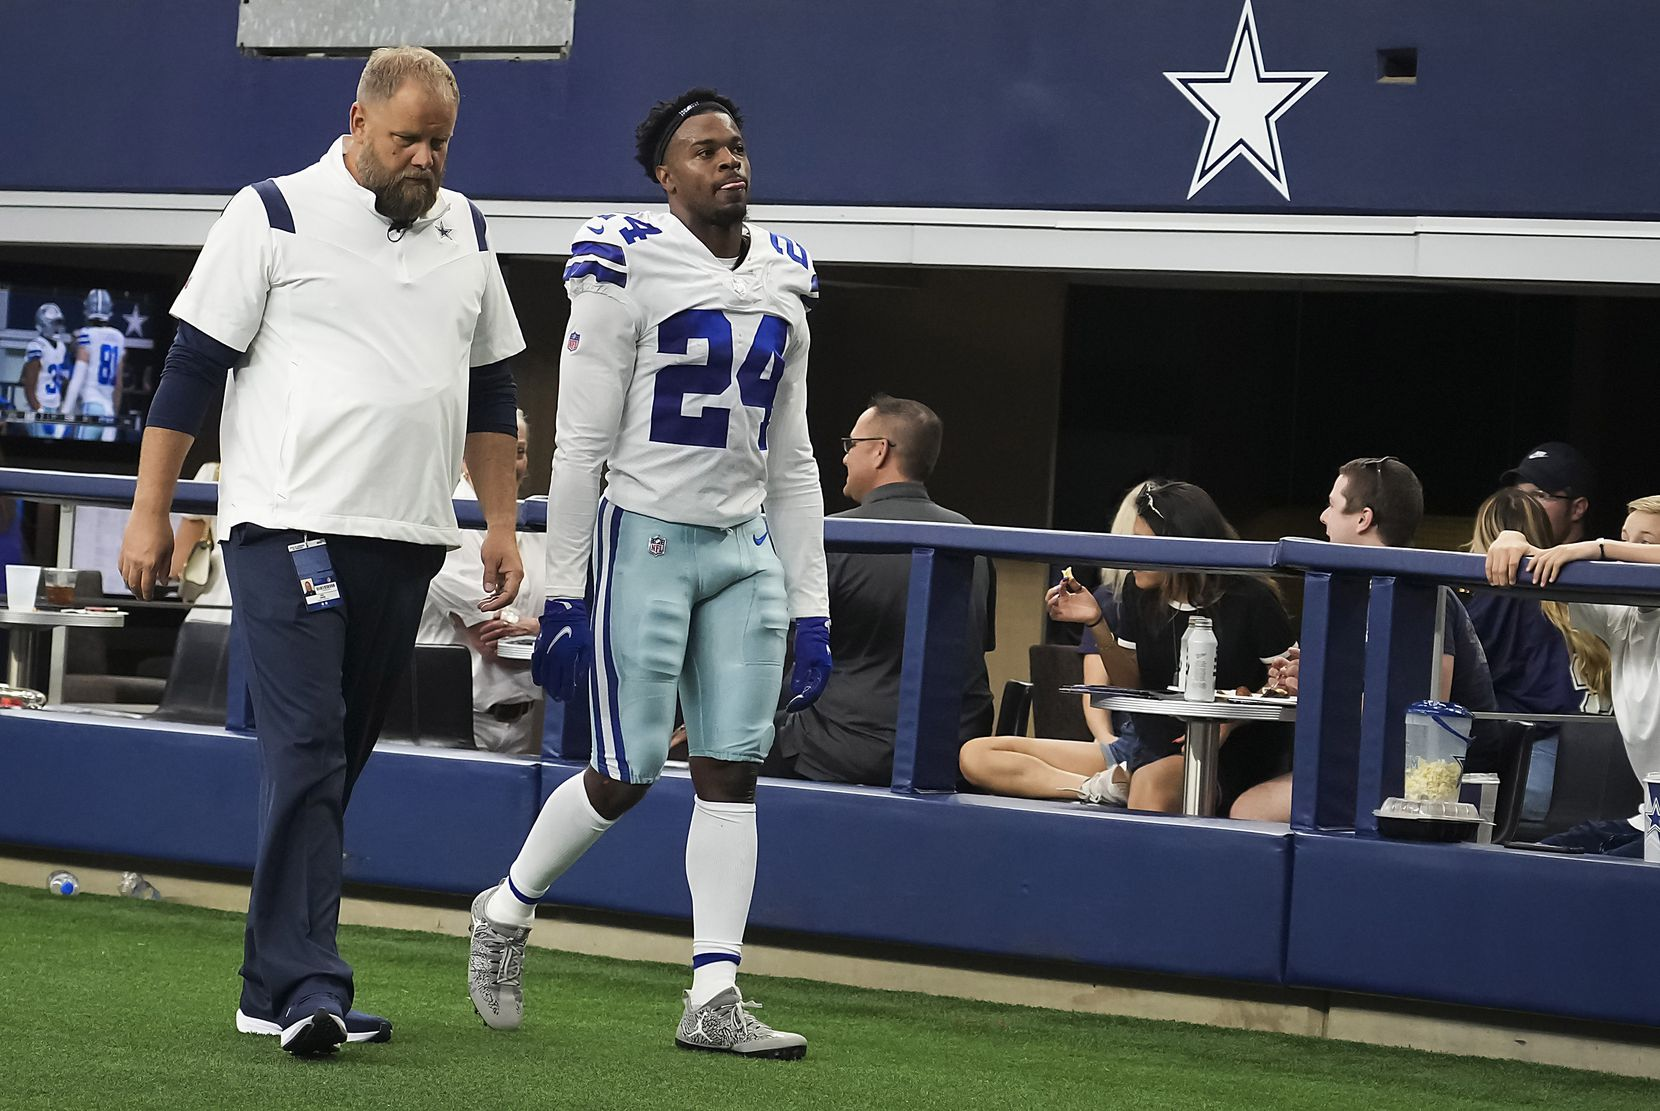 Dallas Cowboys cornerback Kelvin Joseph (24) leaves the field after being injured during the first half of a preseason NFL football game against the Jacksonville Jaguars at AT&T Stadium on Sunday, Aug. 29, 2021, in Arlington. (Smiley N. Pool/The Dallas Morning News)